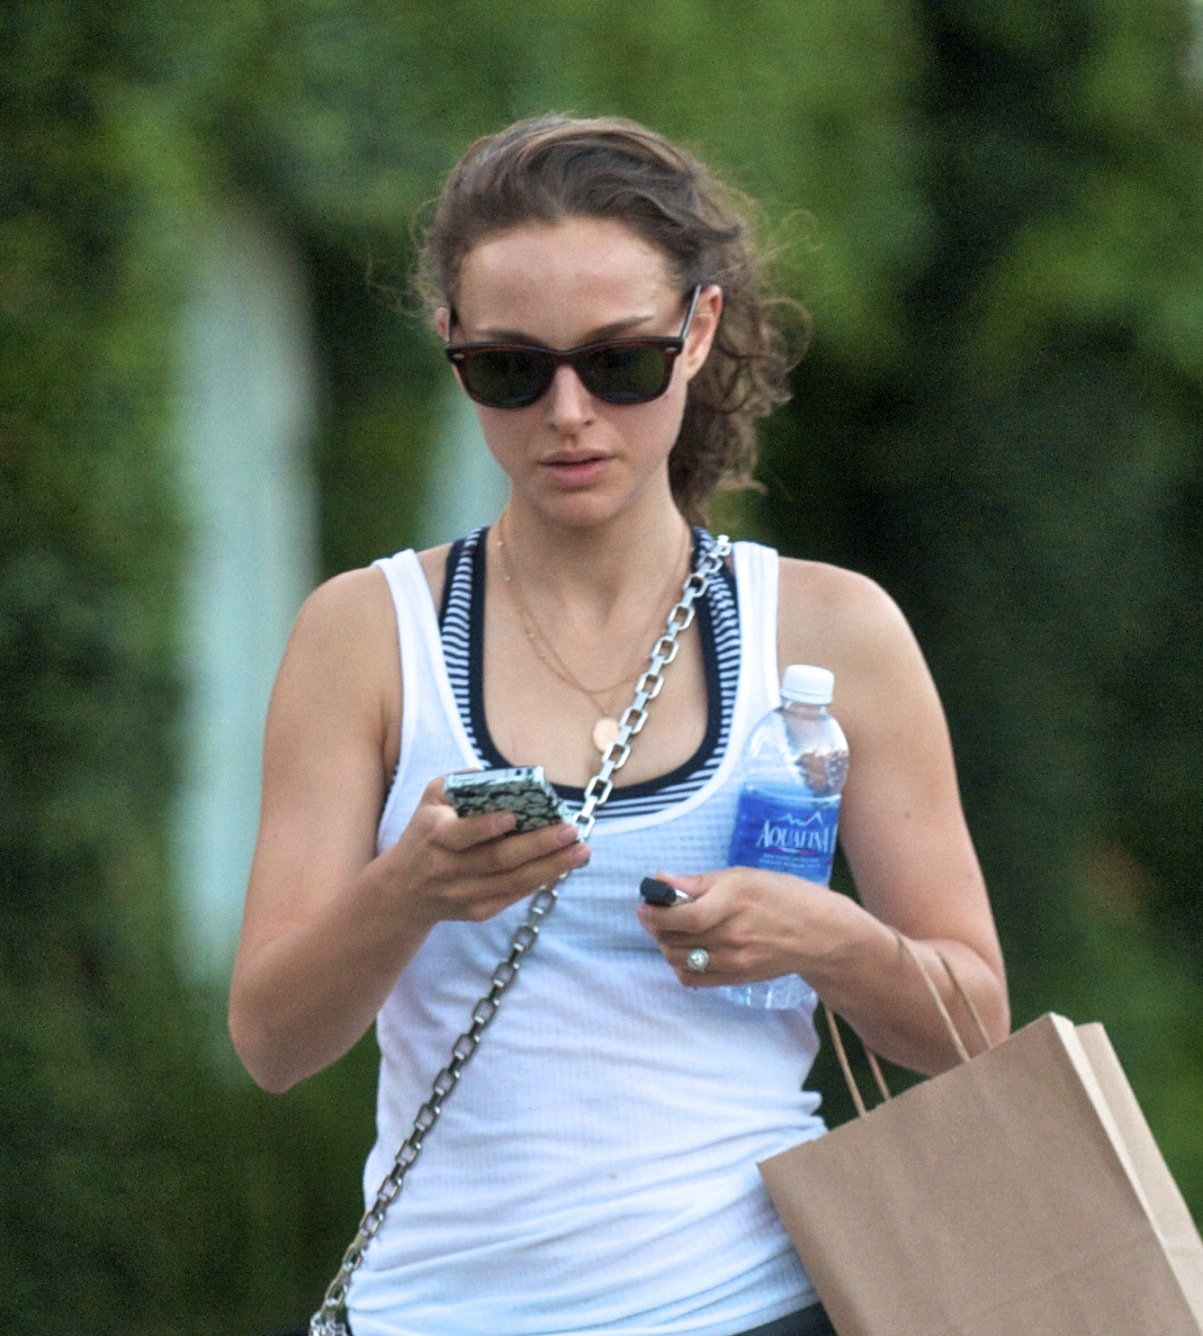 Leaving the gym after a workout in Atwater Village, Los Angeles (June 28th 2012)